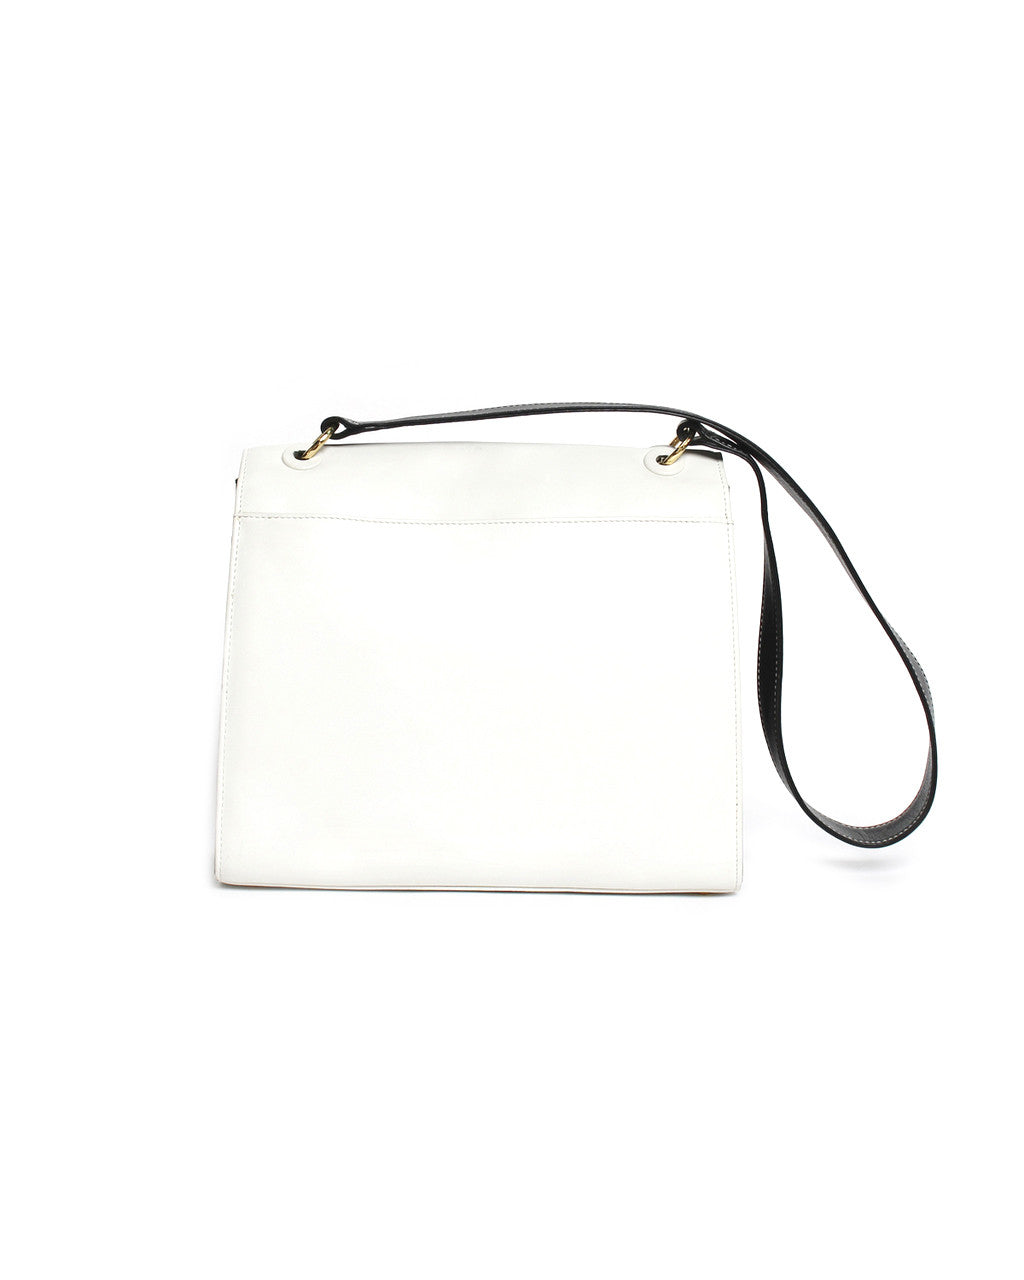 Chanel White & Black Leather Shoulder Purse